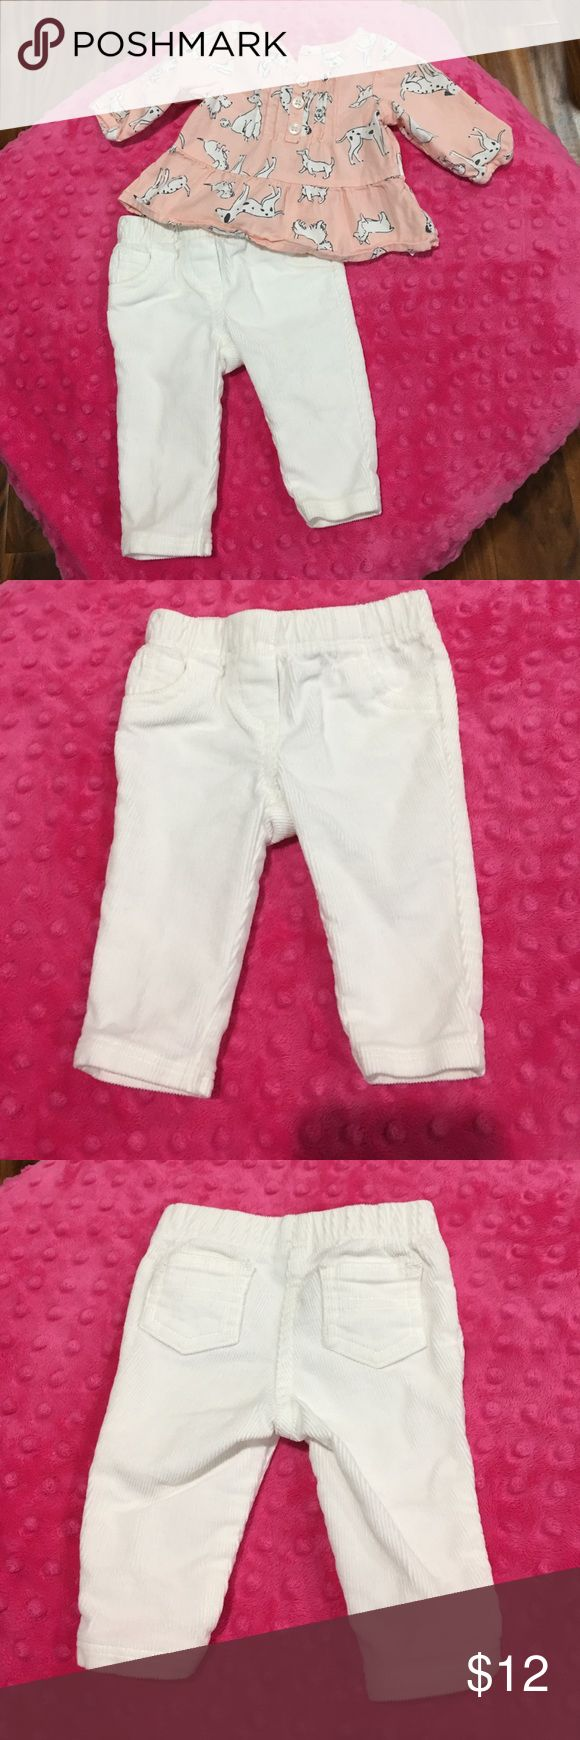 Carter's 2 pc pants set EUC. Light pink long sleeve with dogs top. White corduroy leggings. Carter's Matching Sets